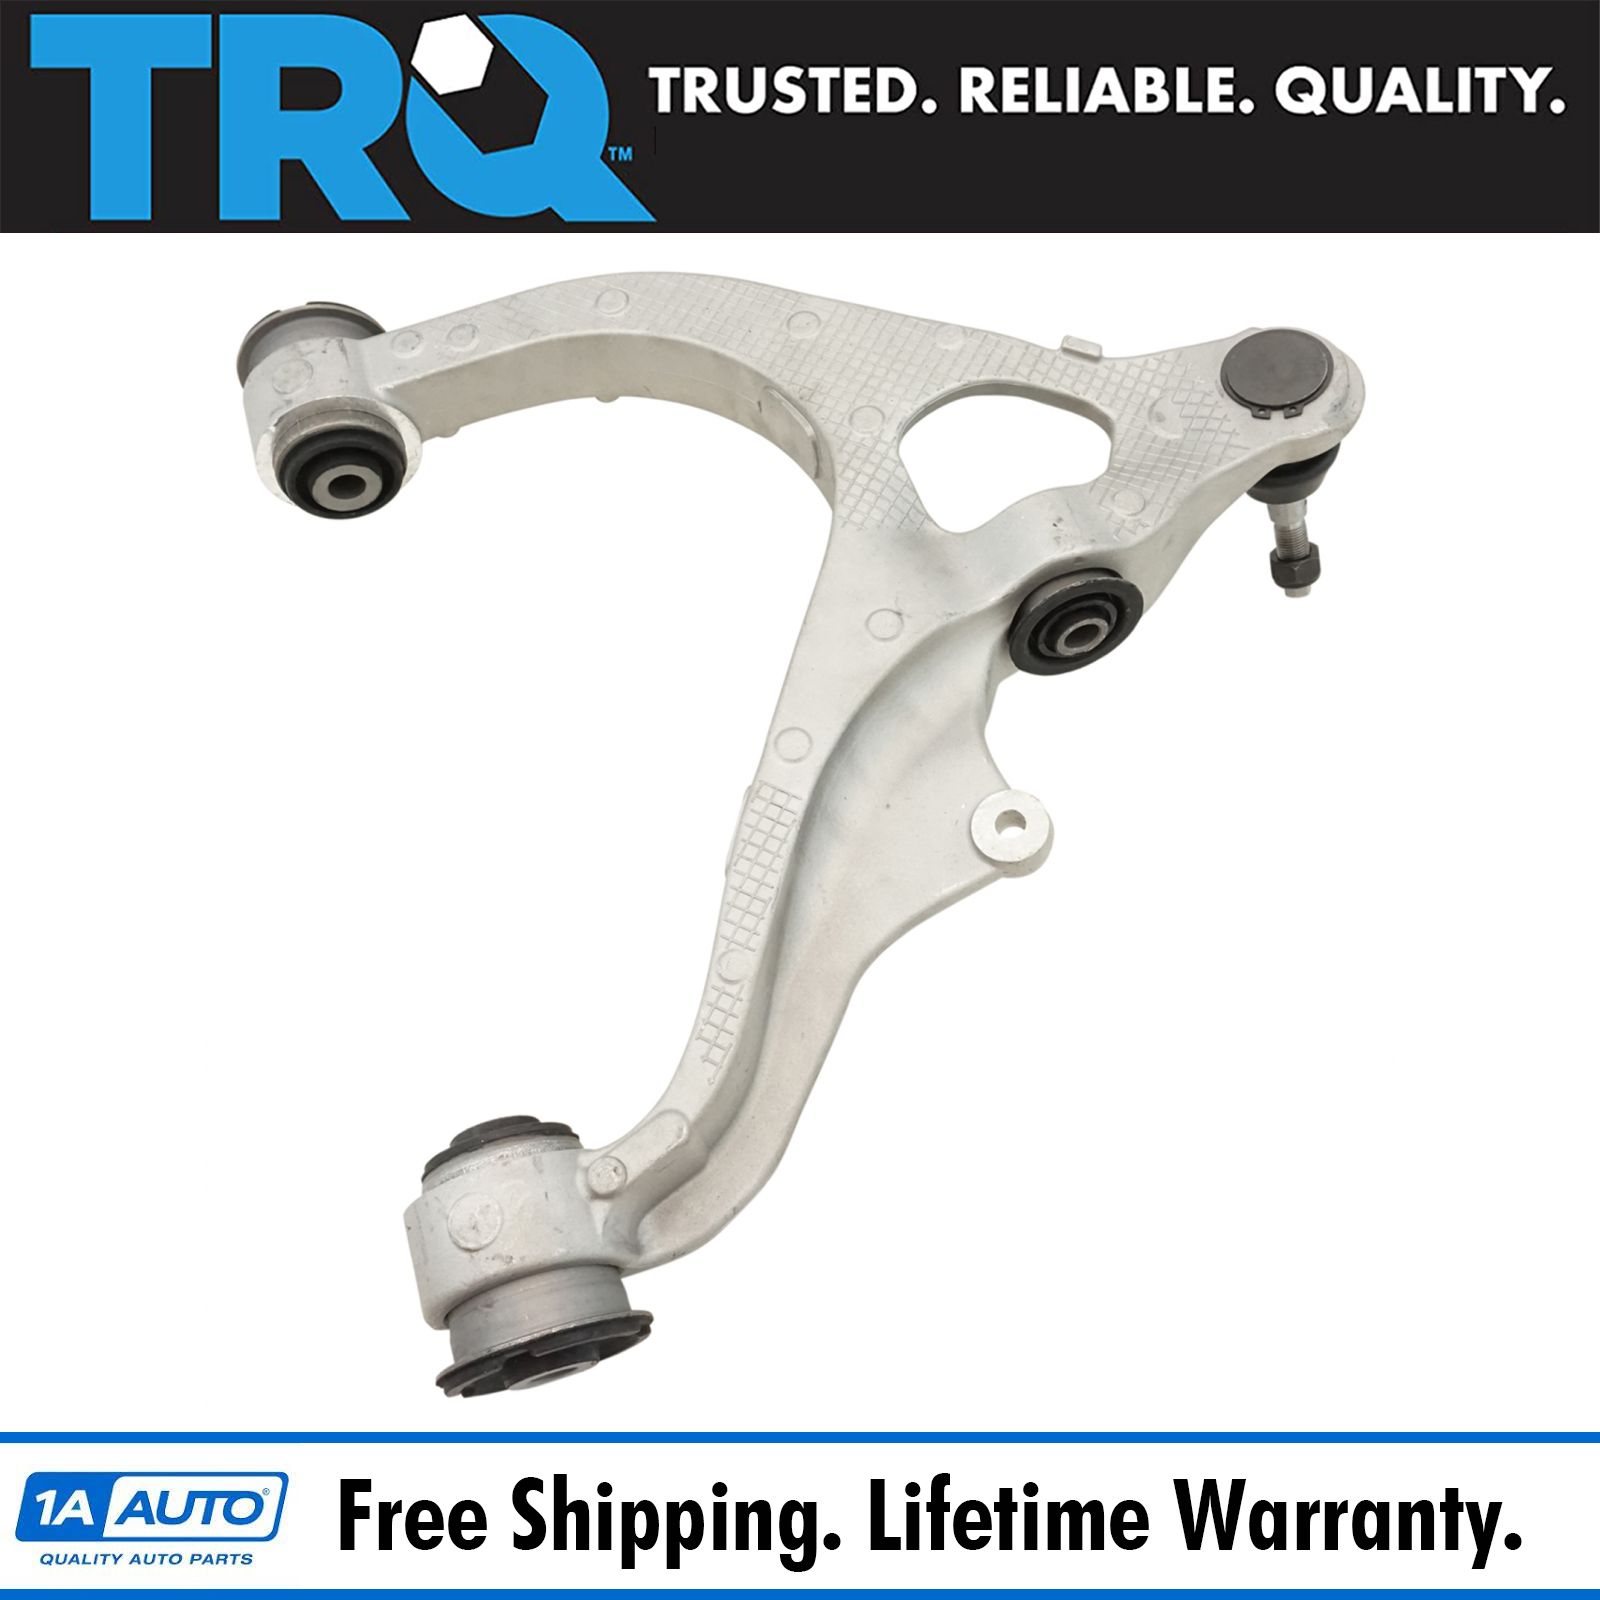 Press In Both 6-Piece Front Suspension Kit 2 Front Upper Control Arm /& Ball Joints 2 Front Lower Ball Joints Fit Steel Control Arms Only